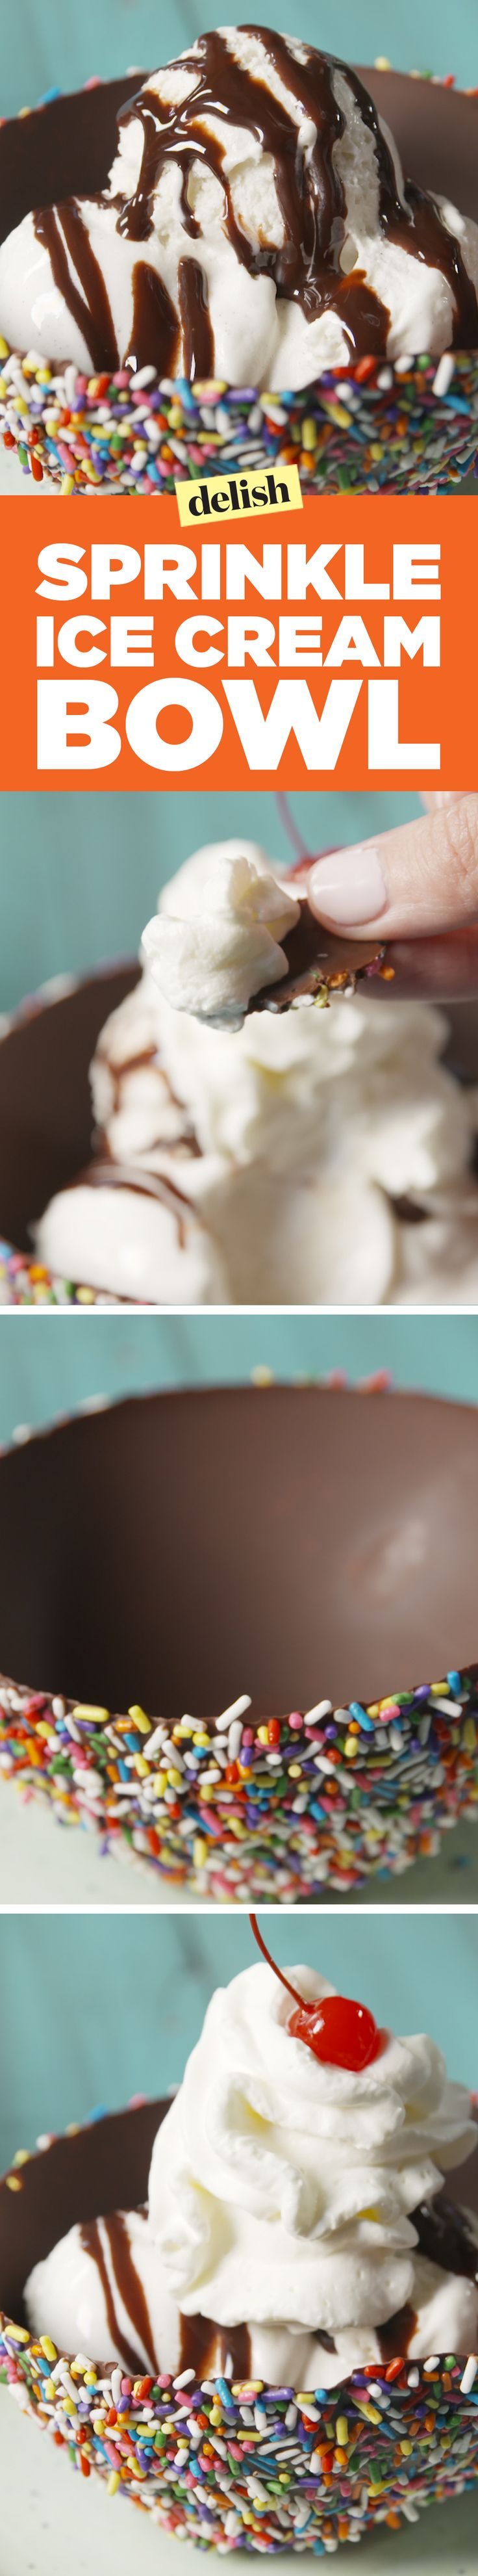 Sprinkle ice cream bowls will change the way you eat ice cream forever. Get the recipe on Delish.com.